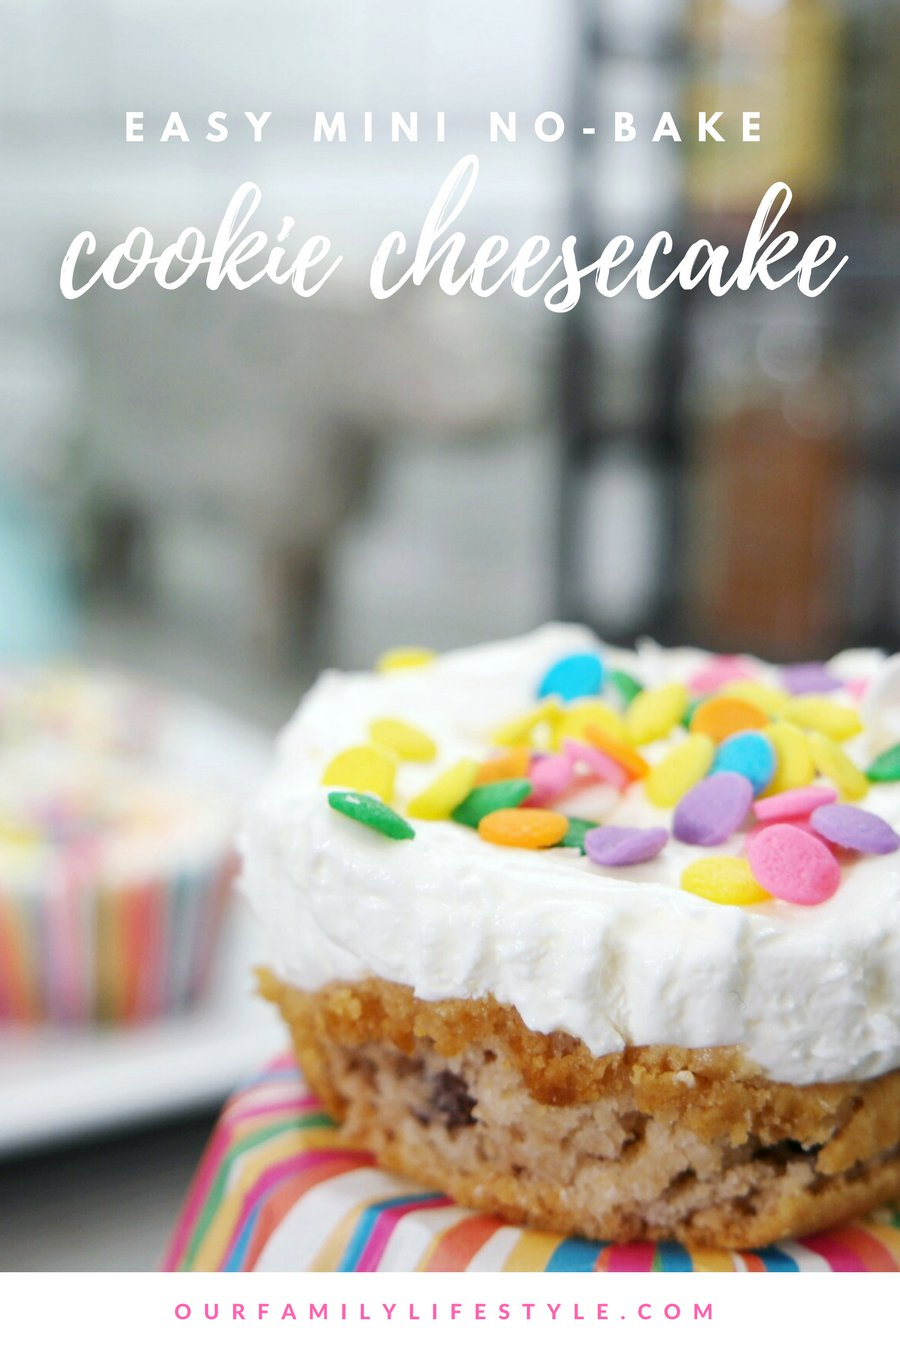 Easy Mini No-Bake Cookie Cheesecake Recipe for Kids